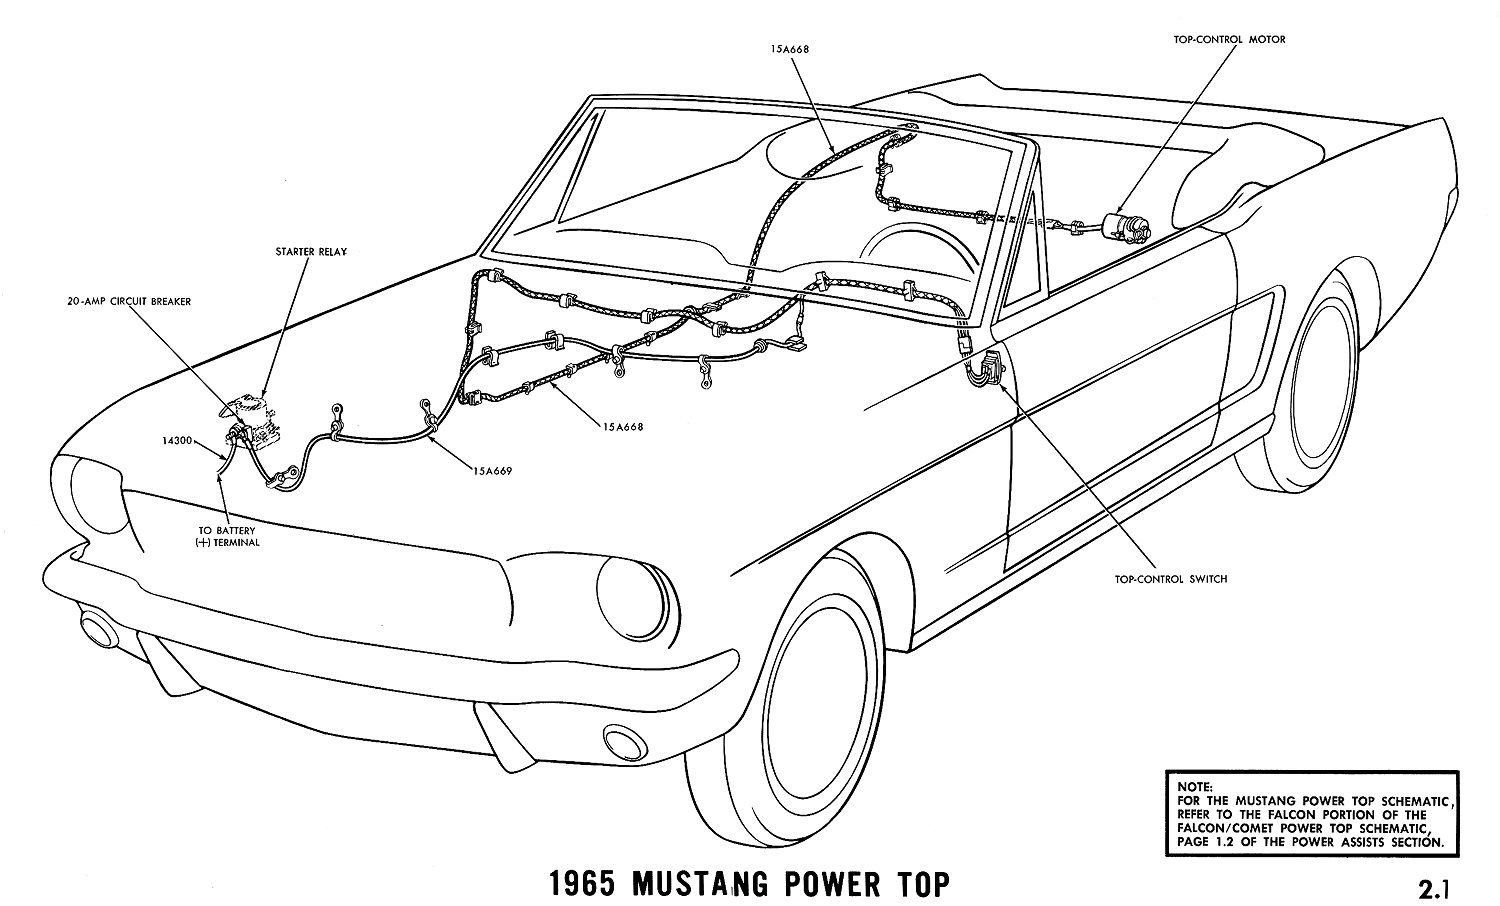 1965 Mustang Wiring Diagrams Average Joe Restoration Motor Resistor Replacement Further Ford Wiper Diagram 1965j